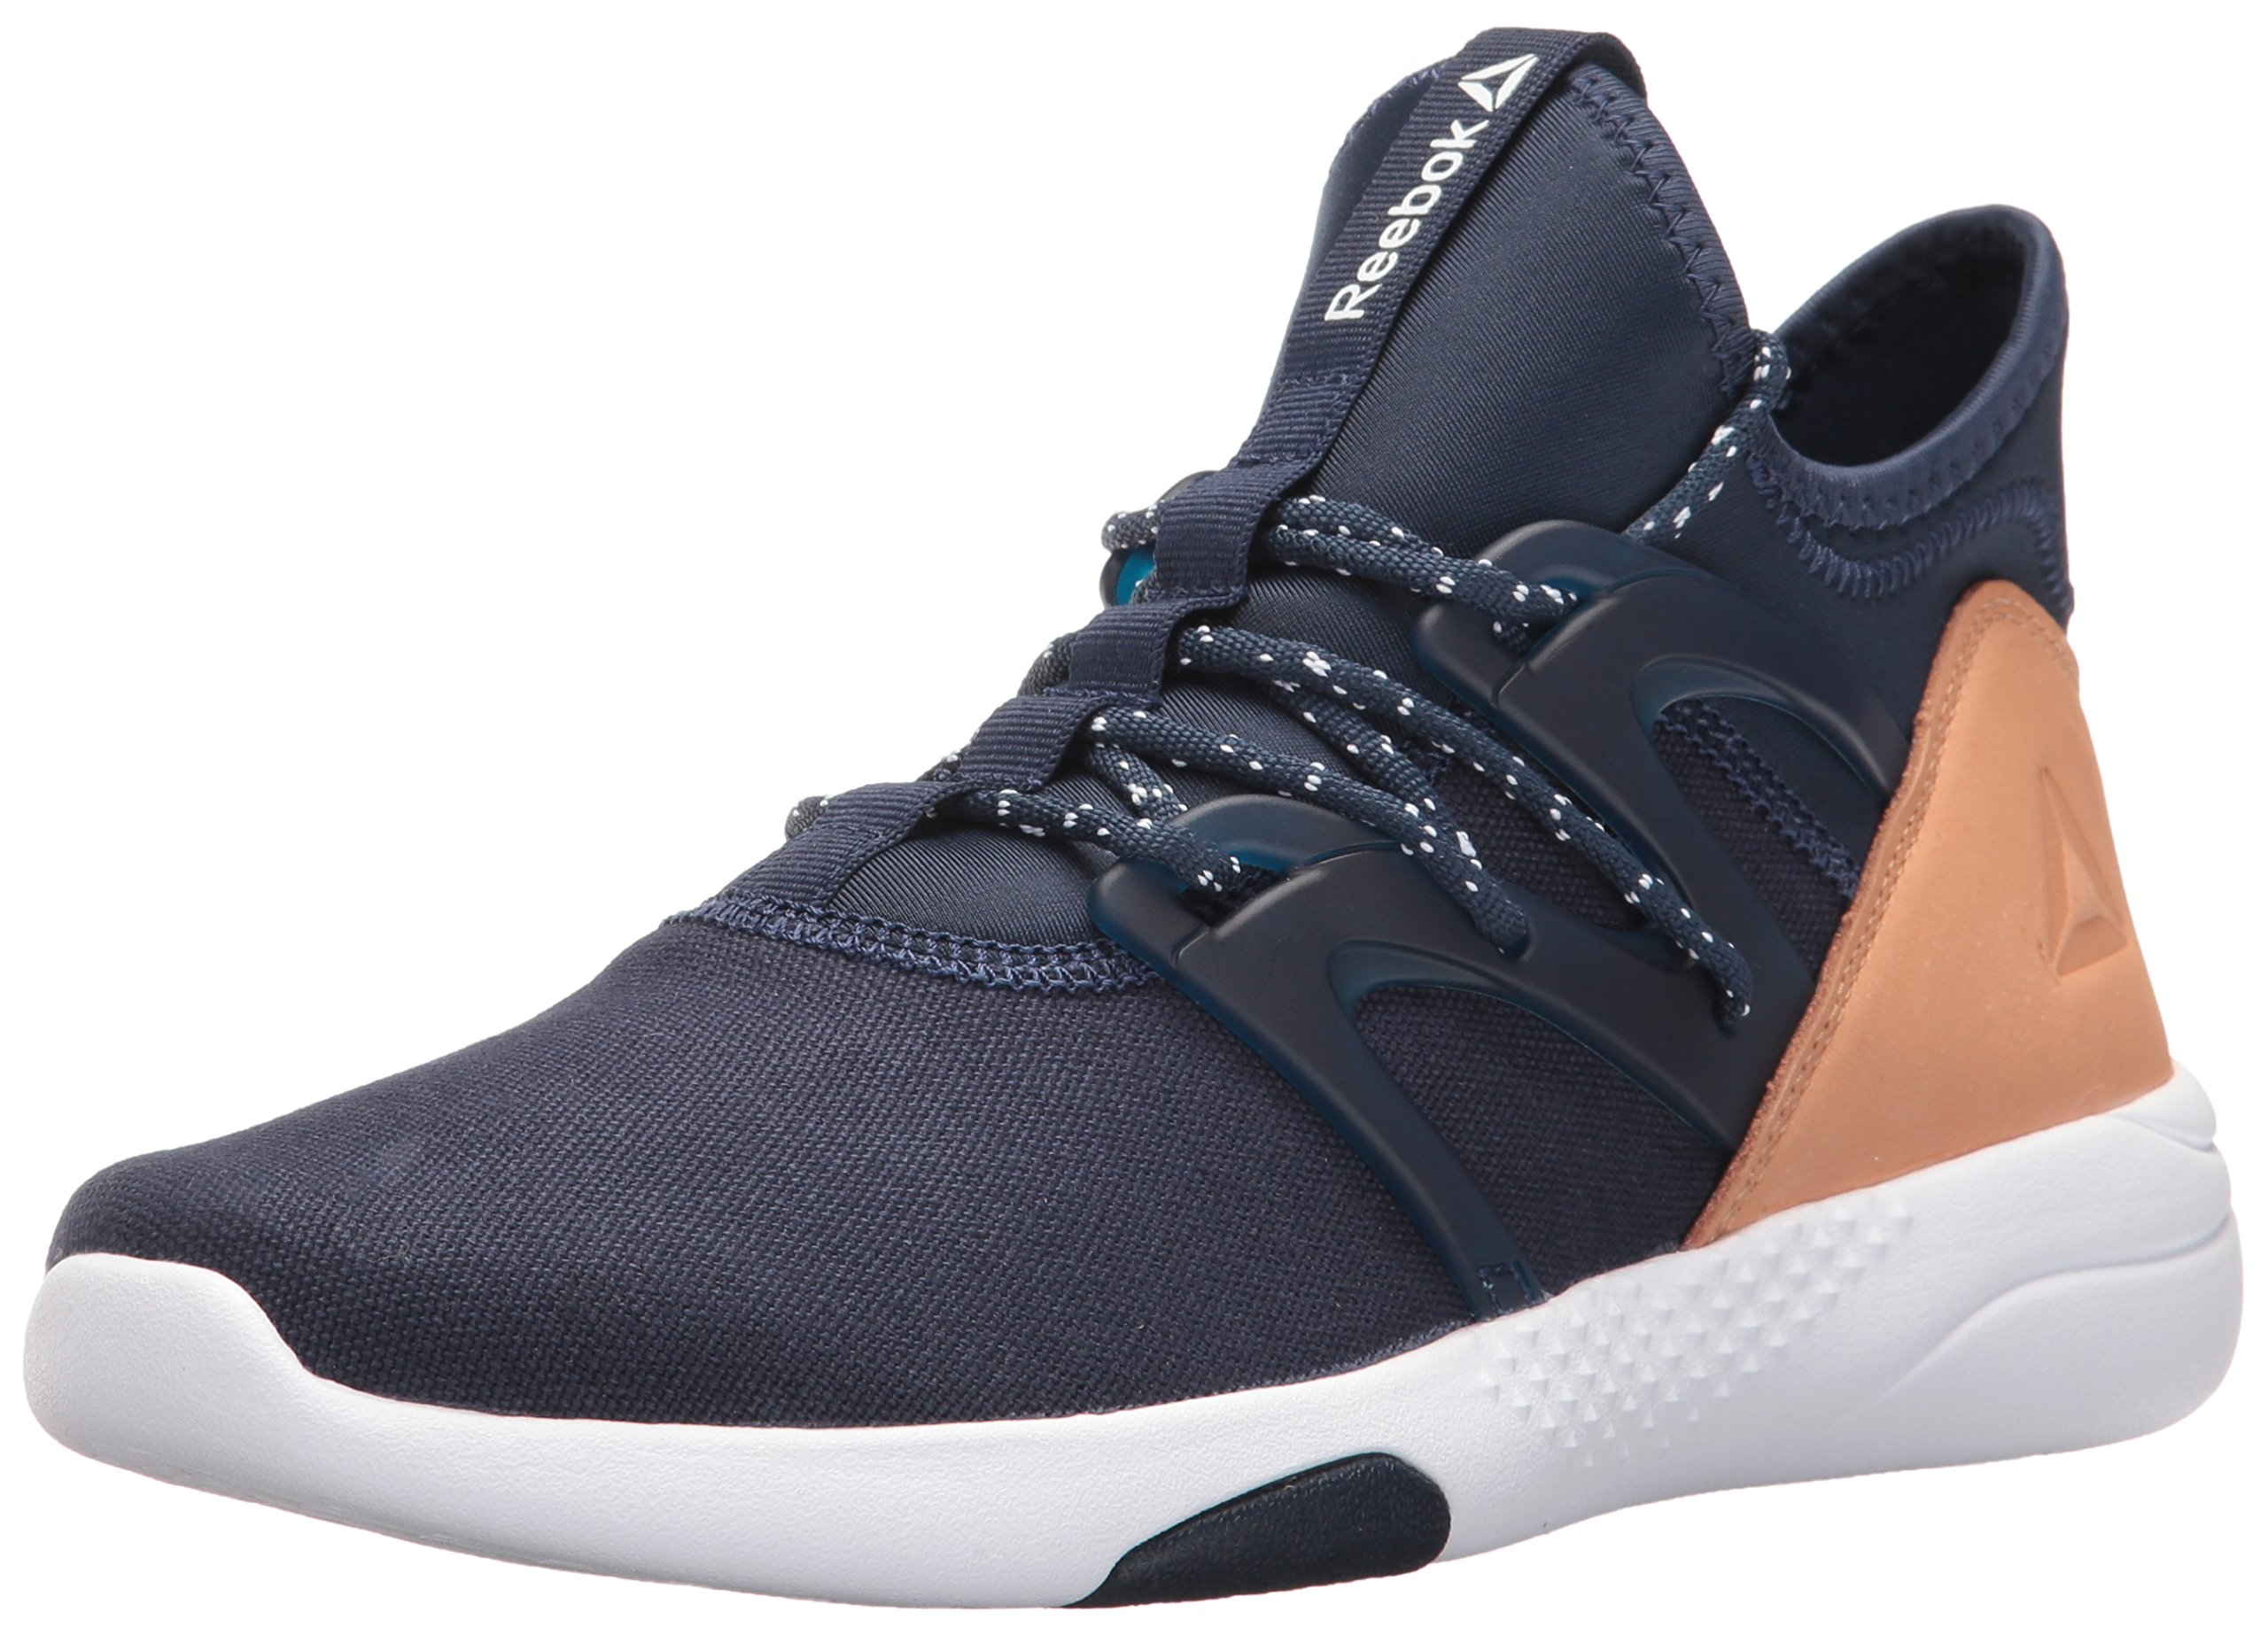 Reebok Women's Hayasu Dance Shoe, Collegiate Navy/White/Veg Tan, 8.5 M US